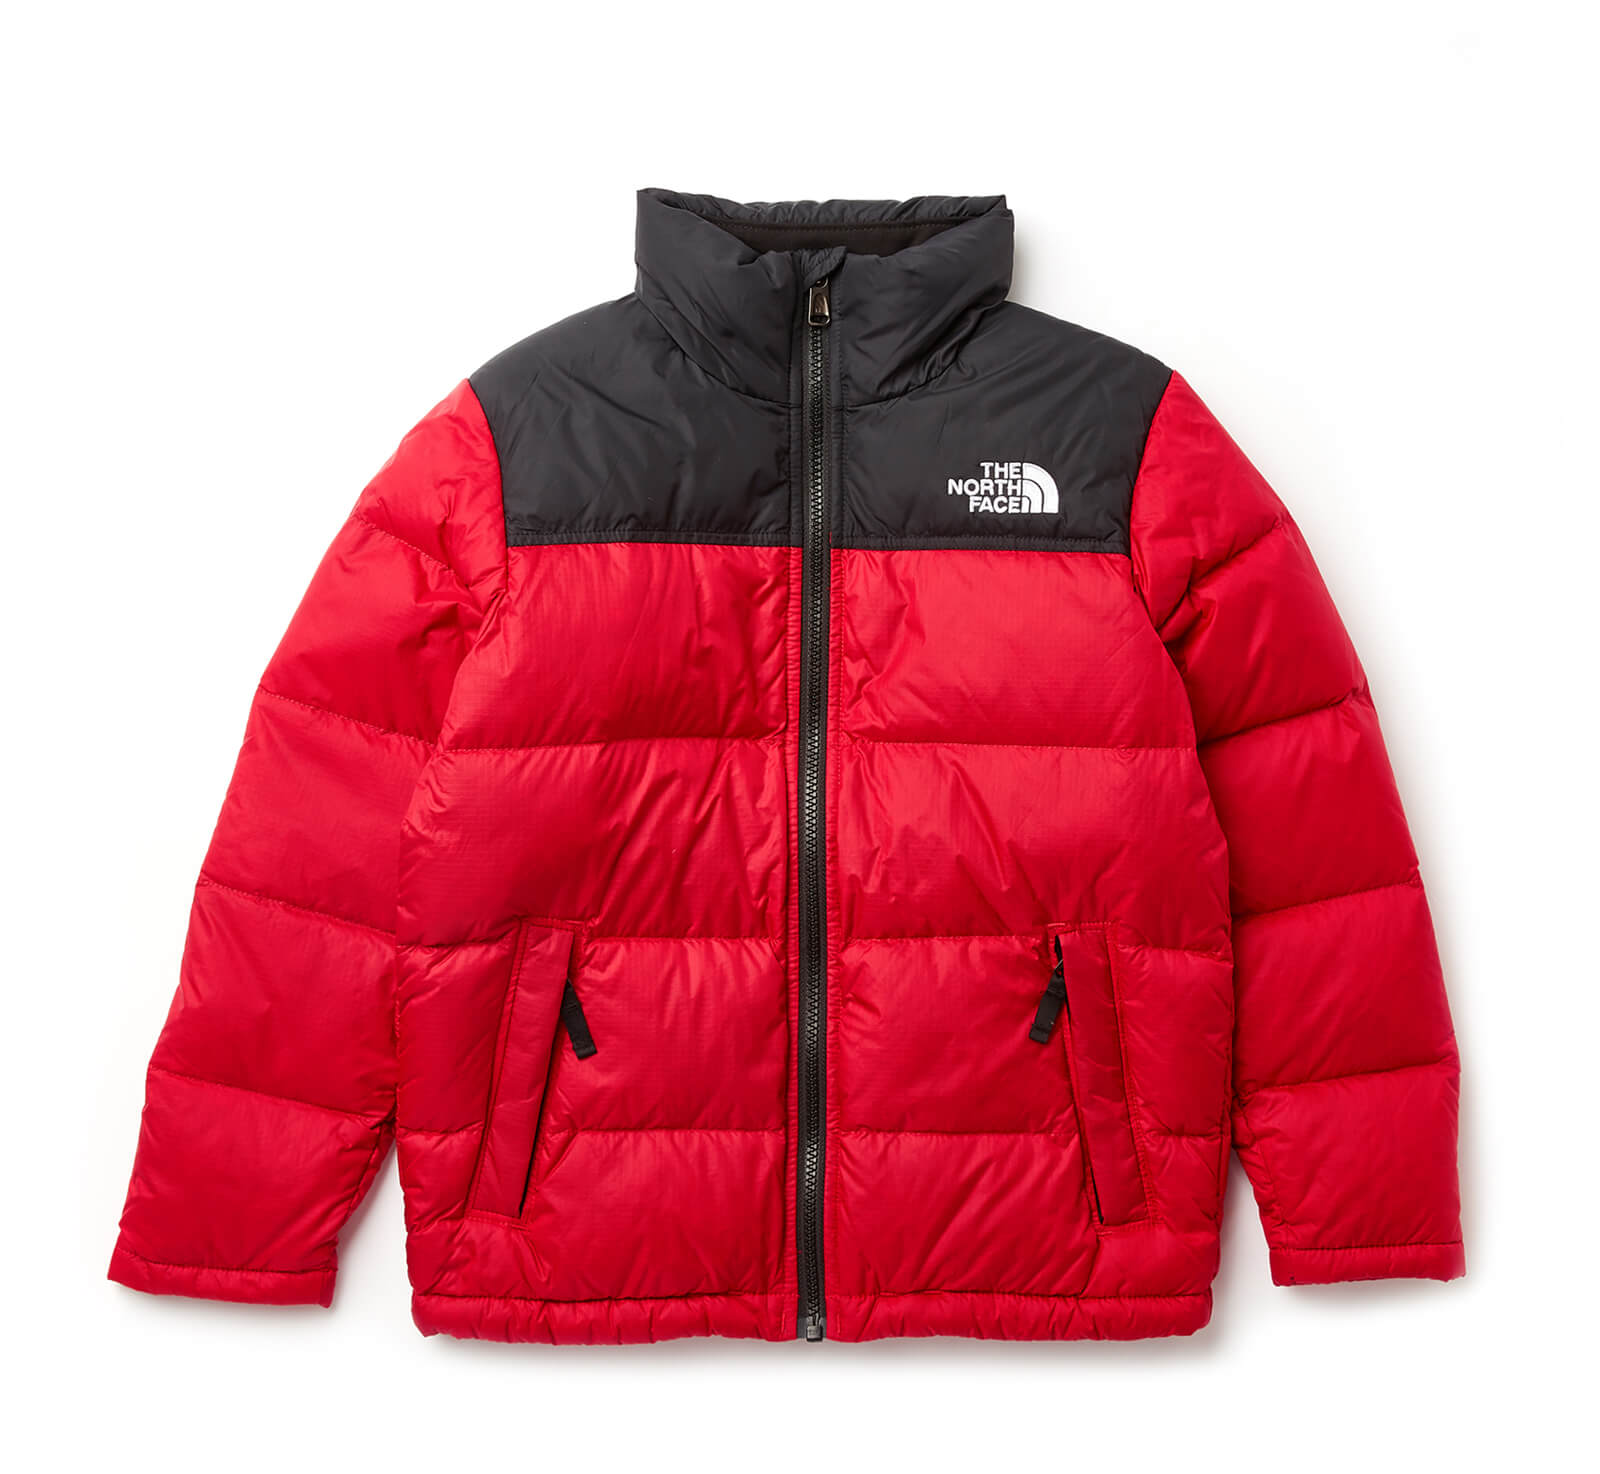 bc5ed35cb445 The North Face Boys  Nuptse Down Jacket - NF Red Clothing